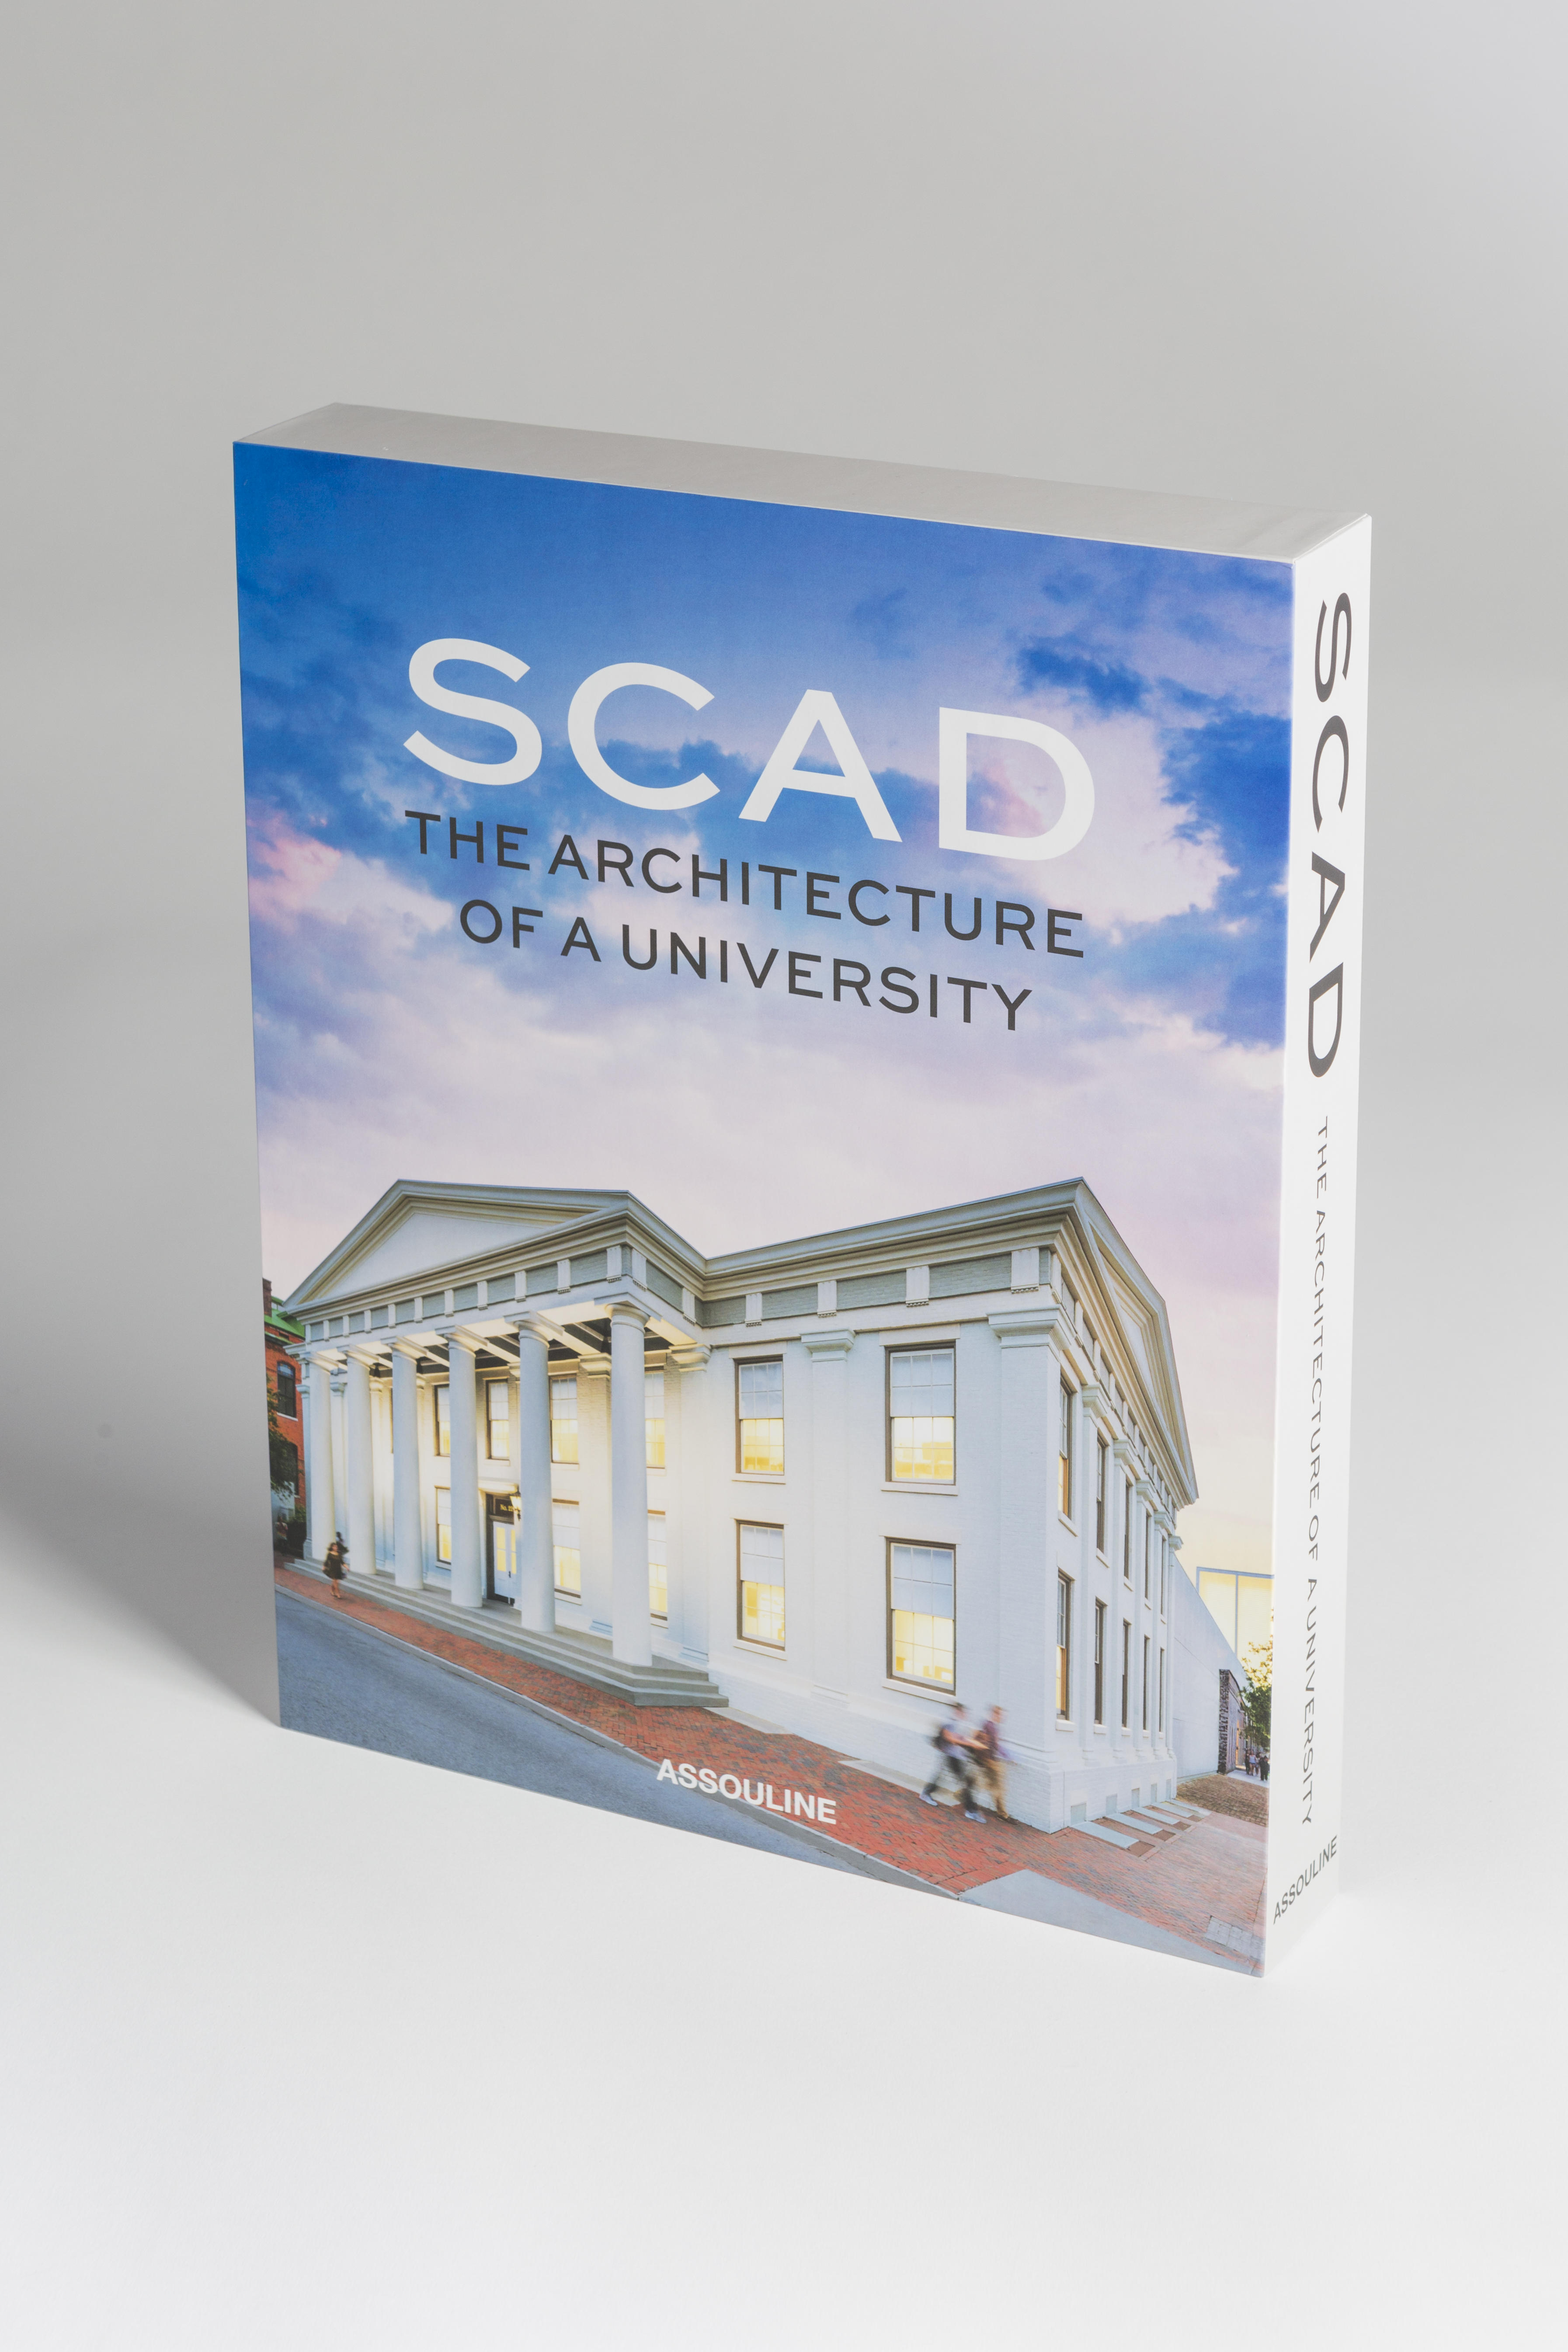 A copy of 'SCAD: The Architecture of a University,' from Assouline